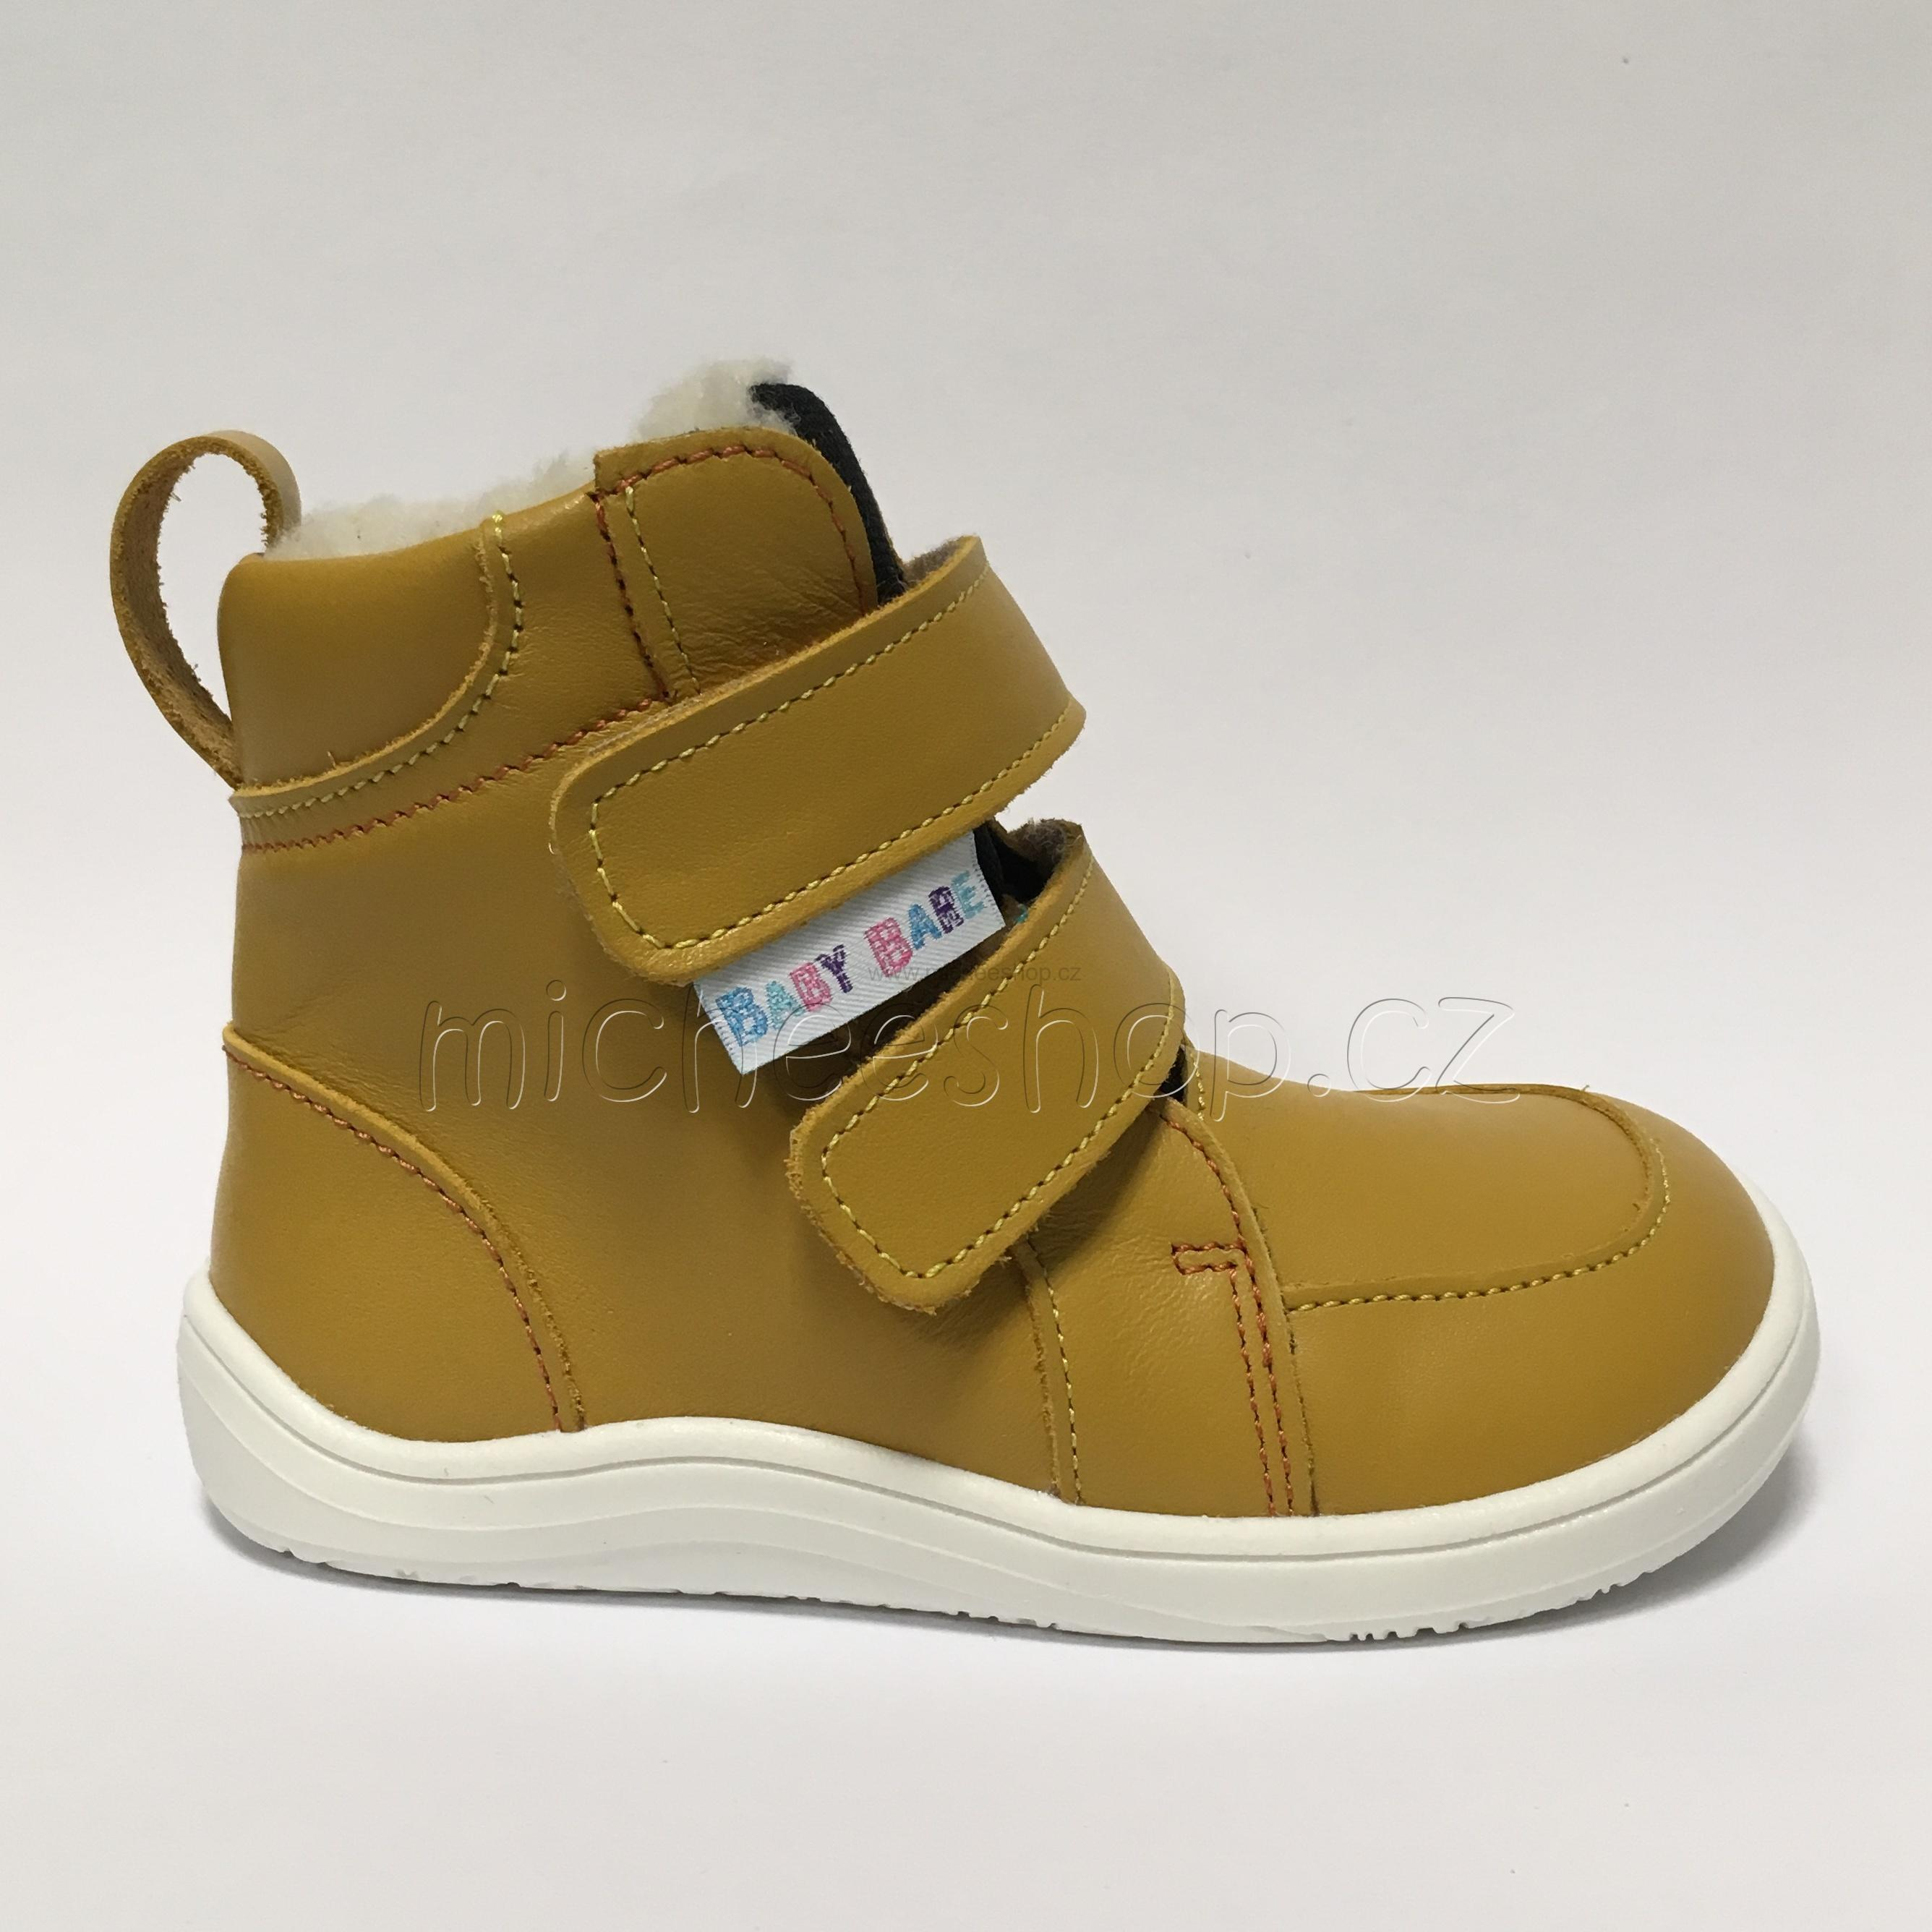 2a59857d60e Zimní obuv | Baby Bare Shoes - Febo Winter Kayak | micheeshop / e ...